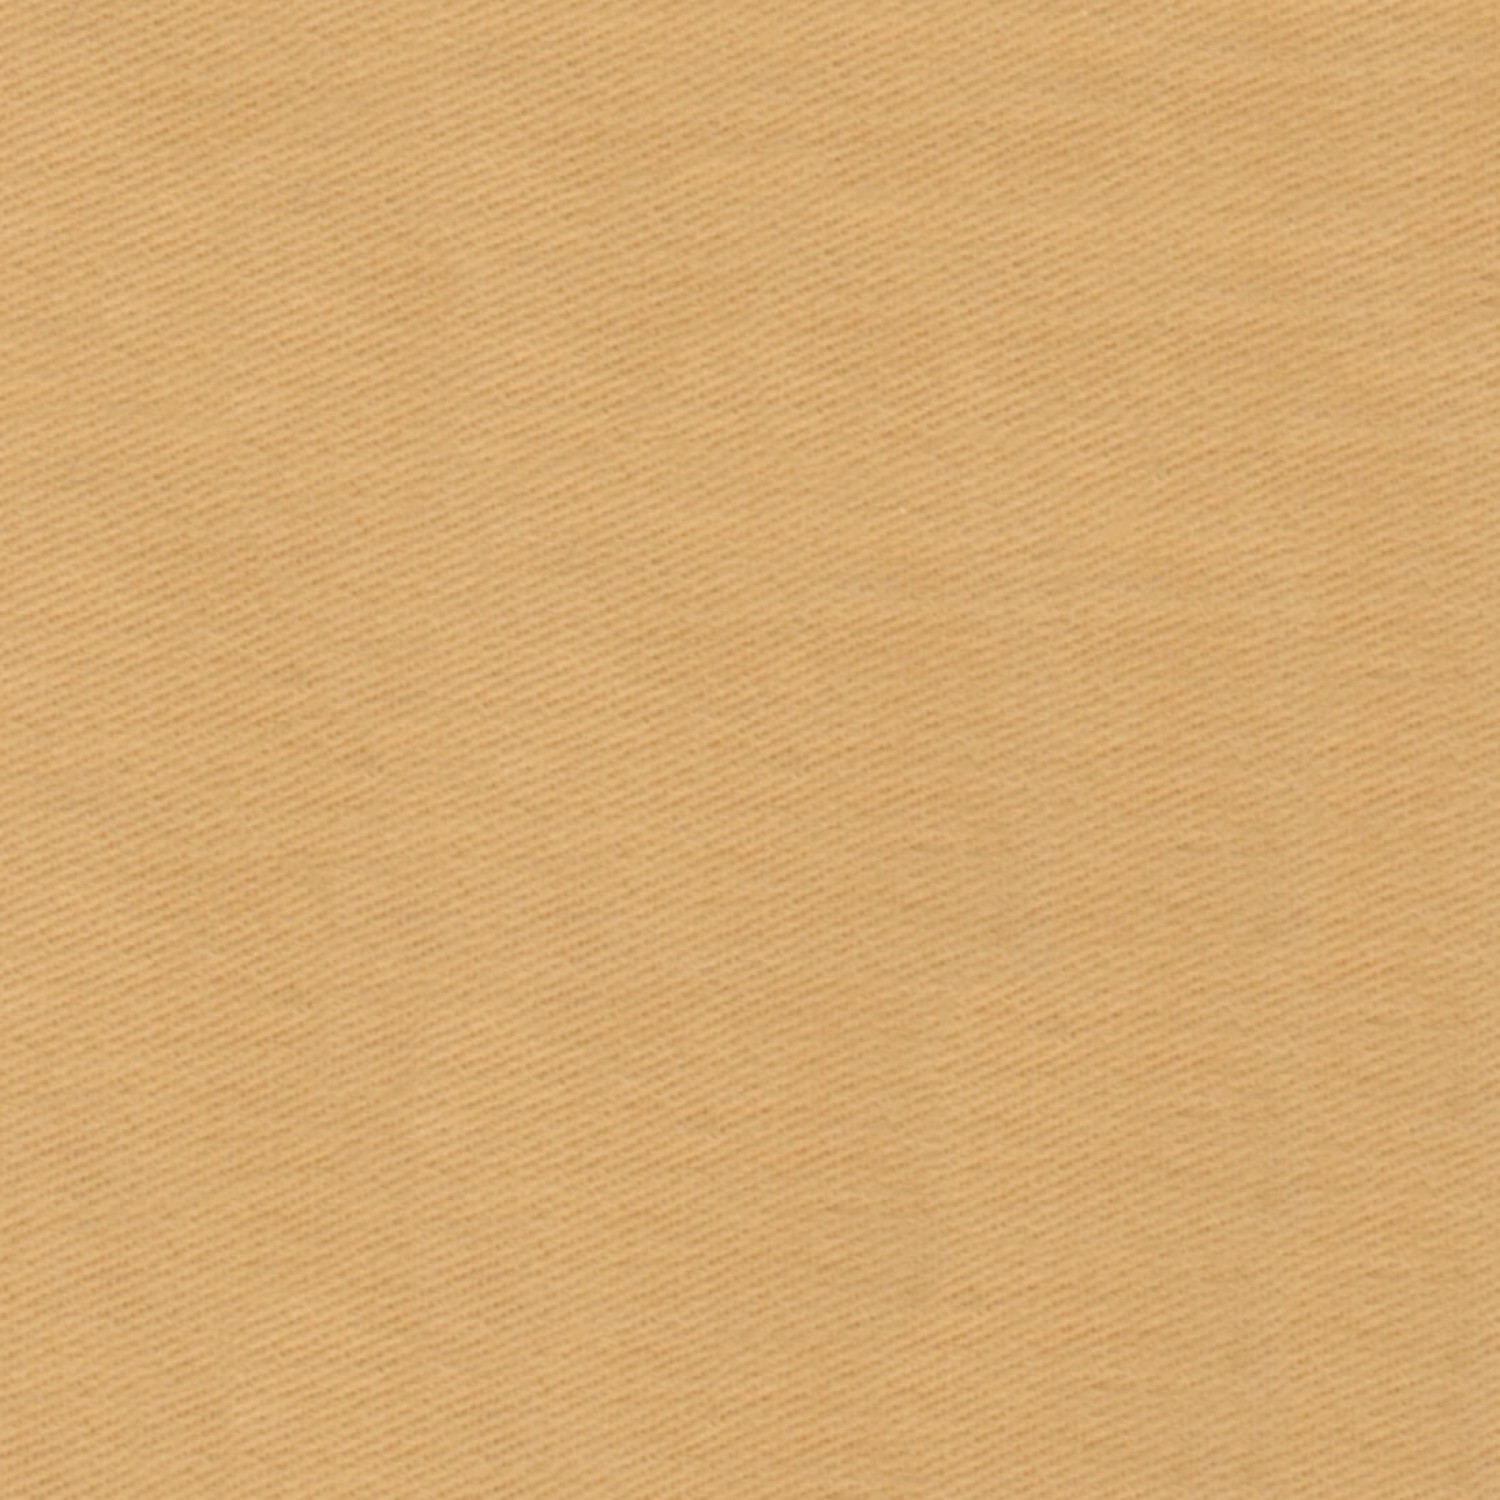 "Milestone Twill Golden Rod Fabric 7oz - 60"" Wide x Per Yard"